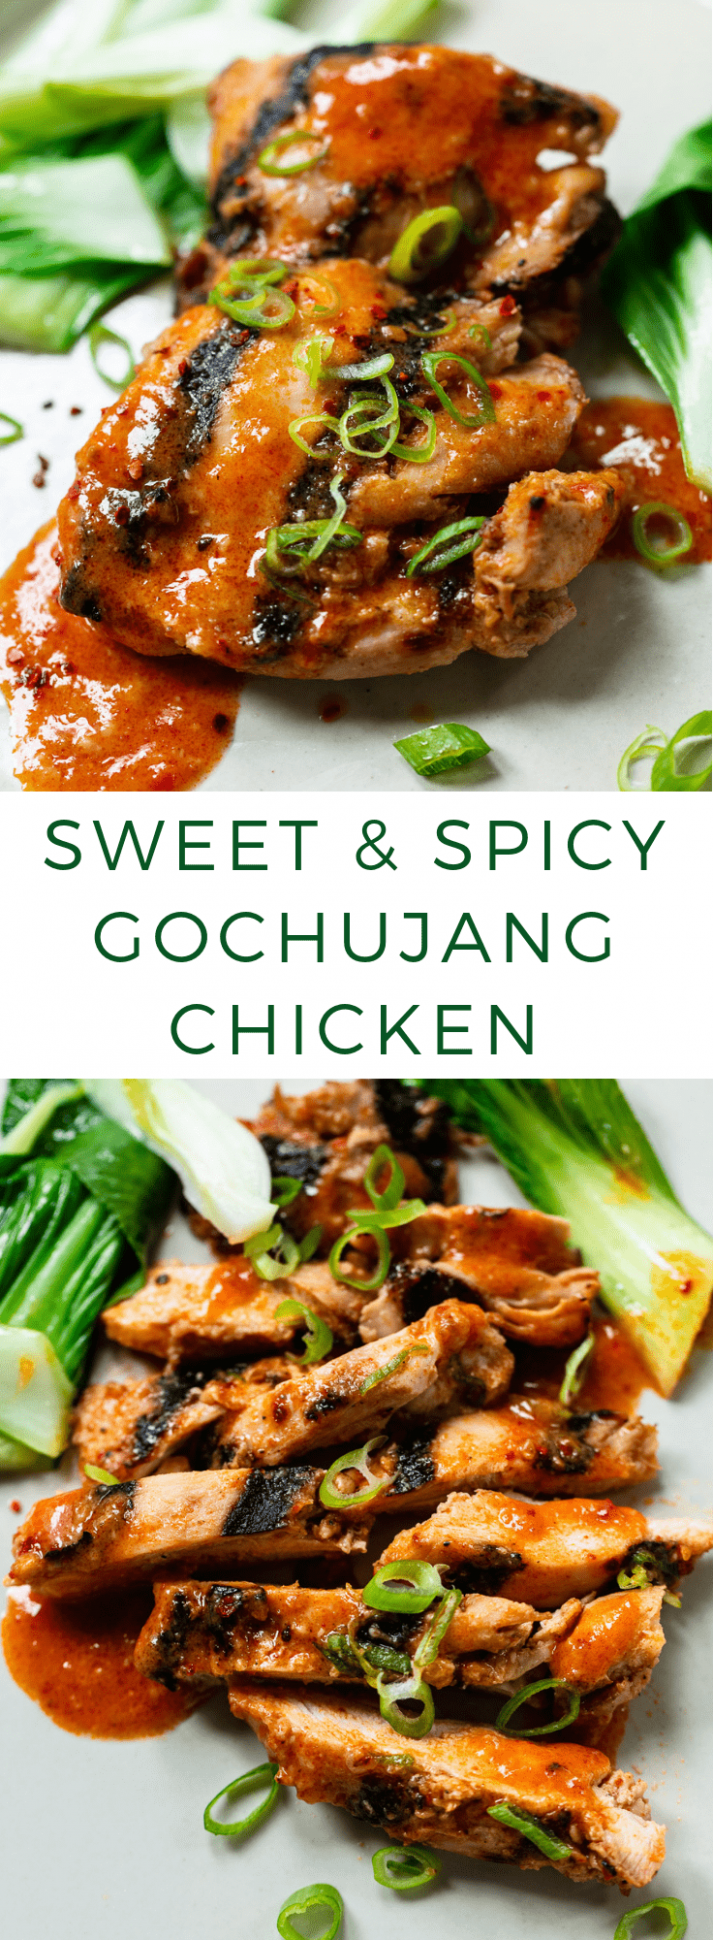 Easy Sweet and Spicy Gochujang Chicken | Familystyle Food